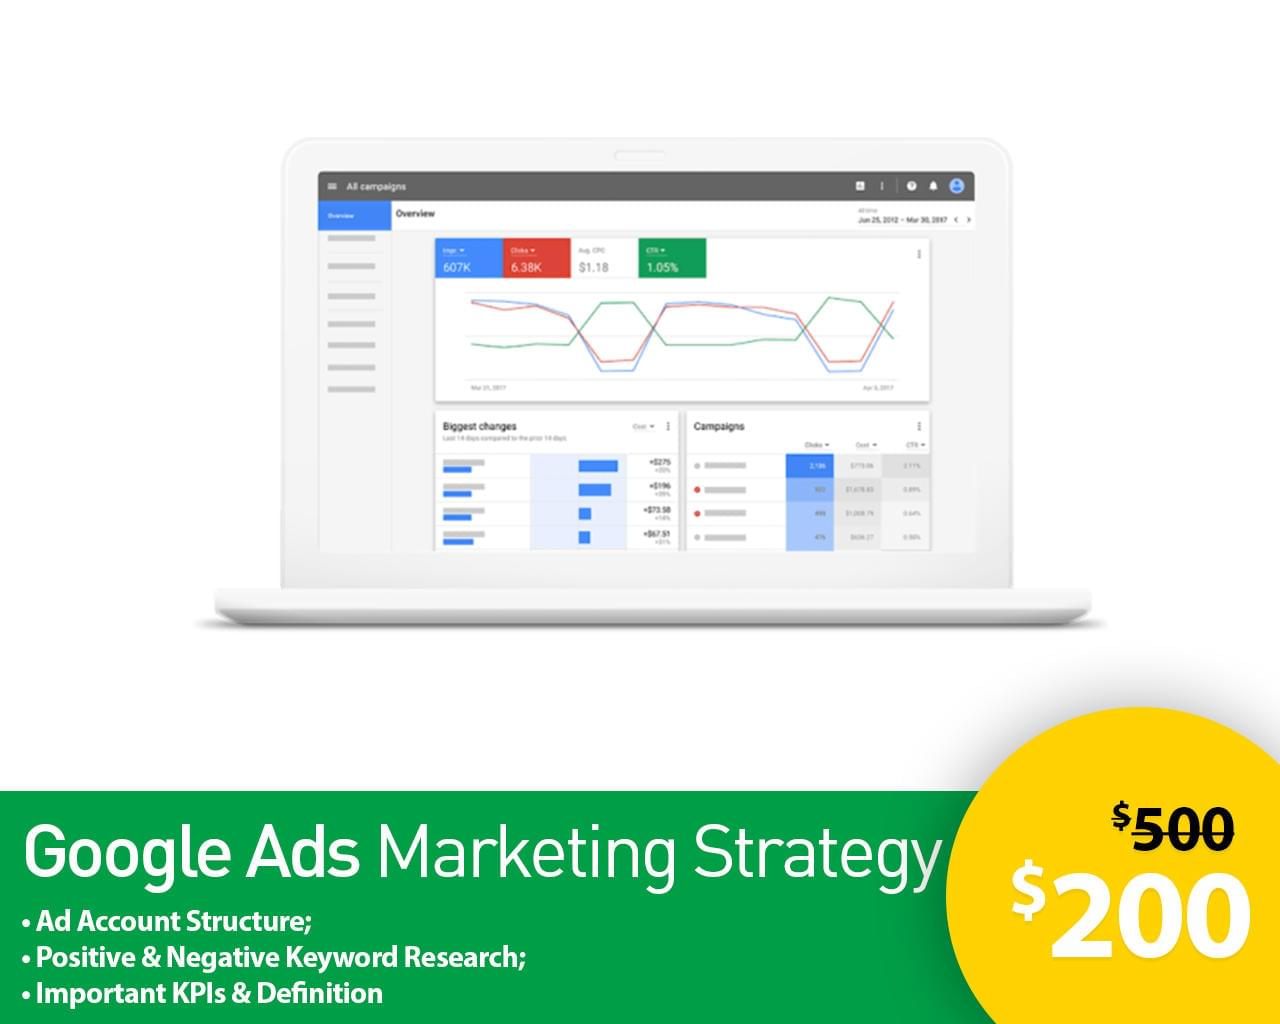 Google Ads Marketing Strategy by ibib - 117201